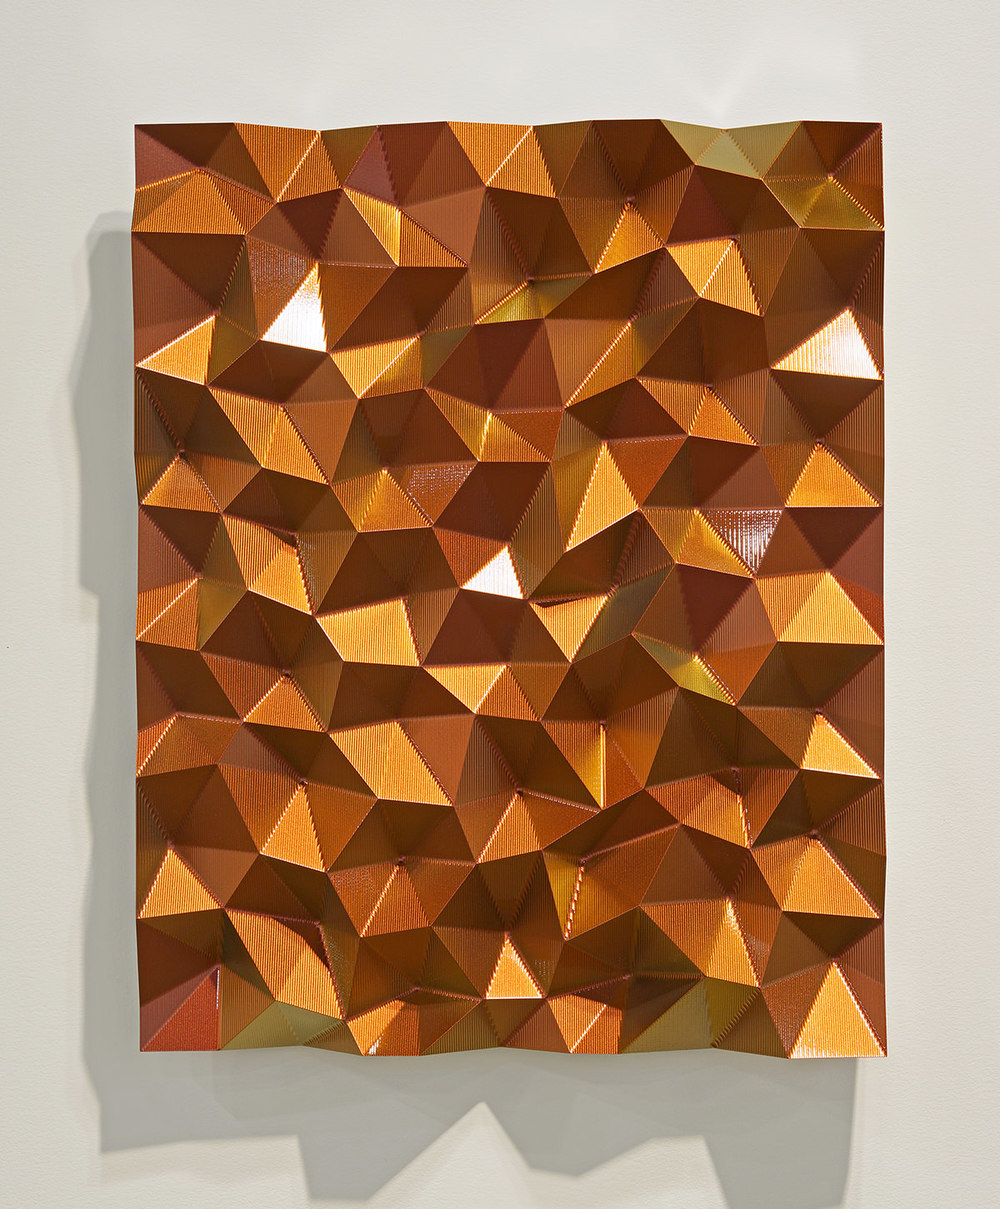 Hexagonal Perturbation- Red/Orange